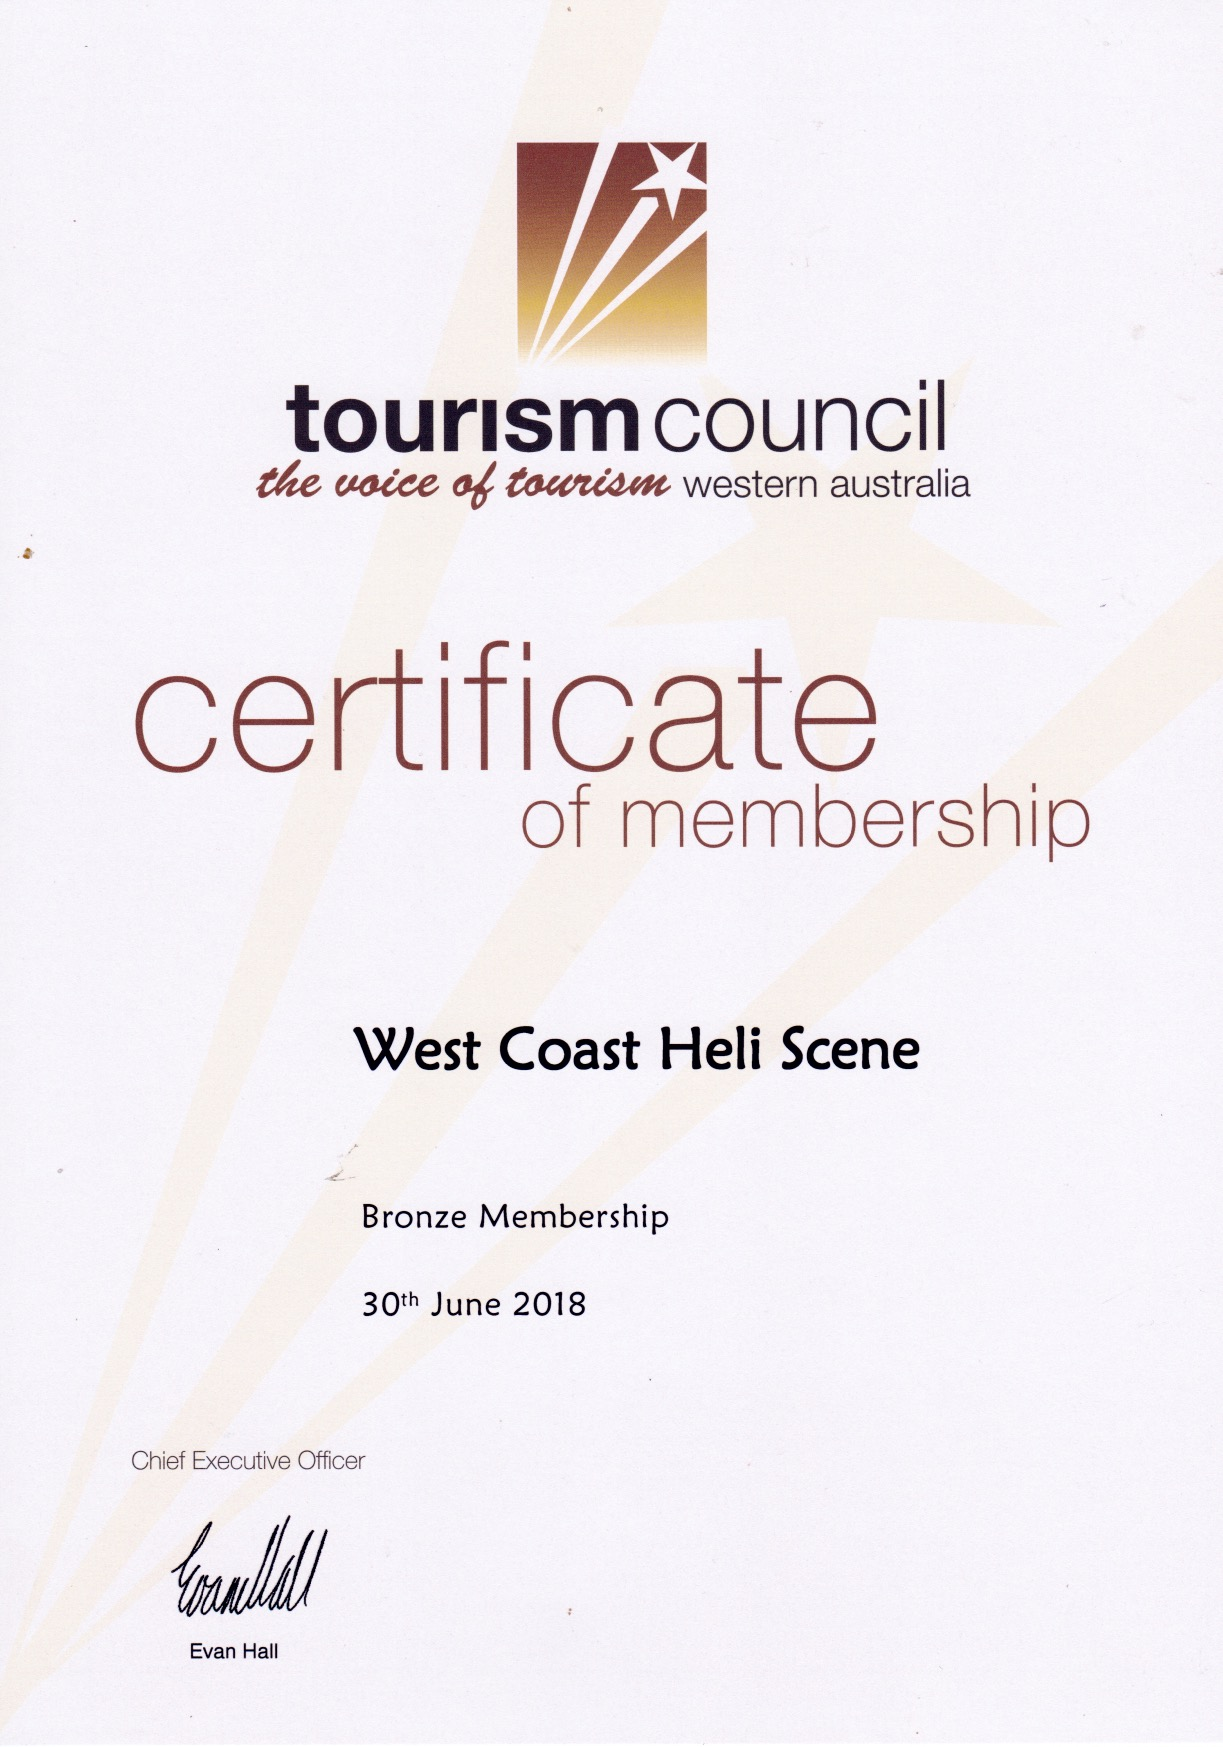 Tourism Council of wa cert 2018